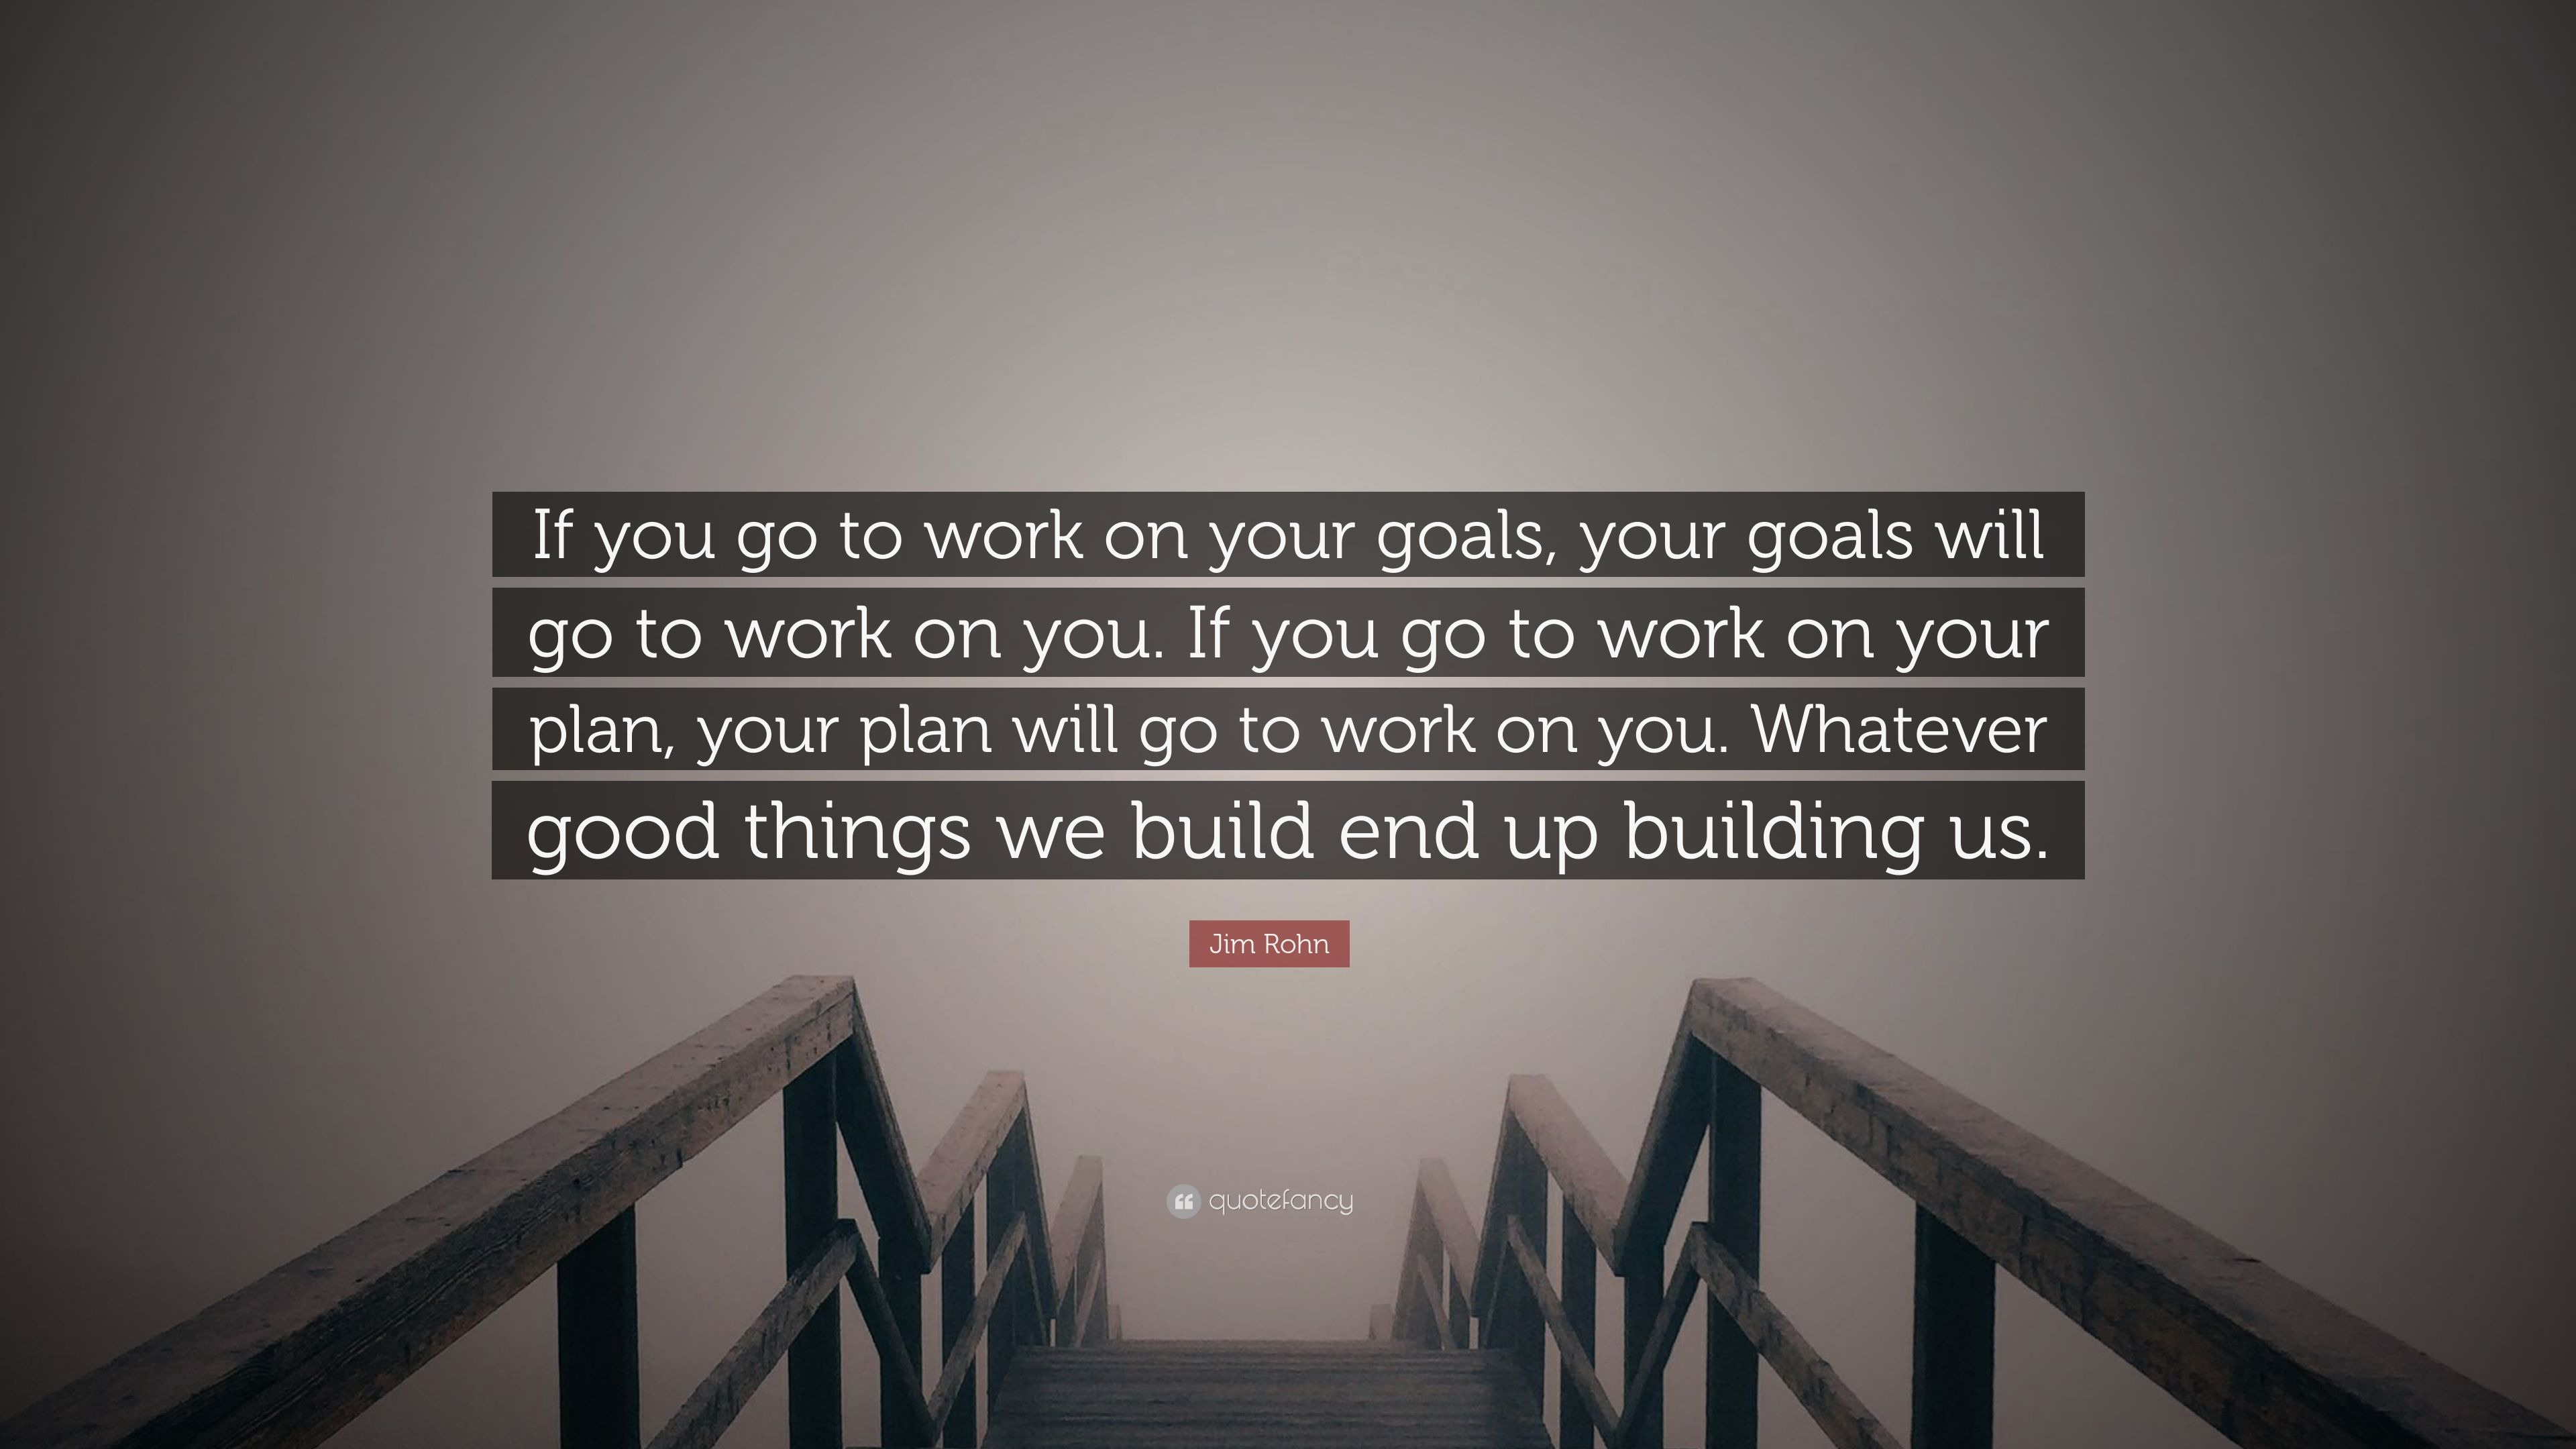 Jim Rohn Quote If You Go To Work On Your Goals Your Goals Will Go